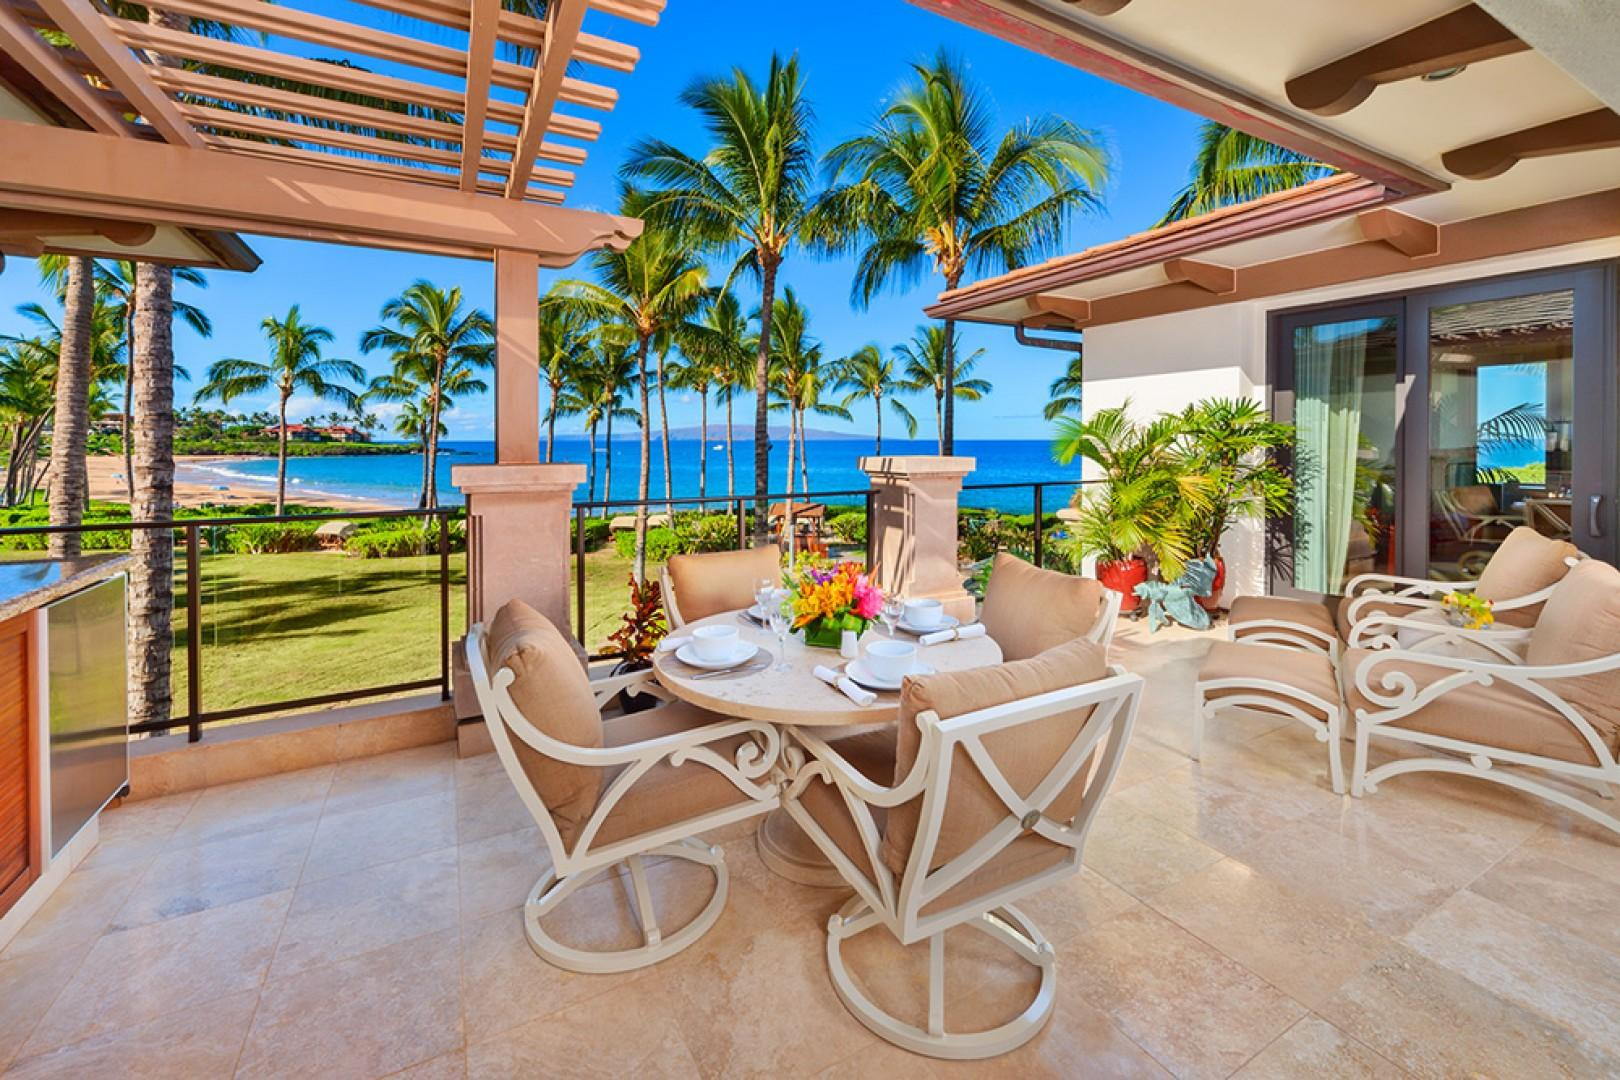 A201 Set Directly Above Wailea Beach with Panoramic Ocean and Beach Views, Outdoor Dining, Viking Grill, Chaise Lounge Chairs, Polished Marble Patio